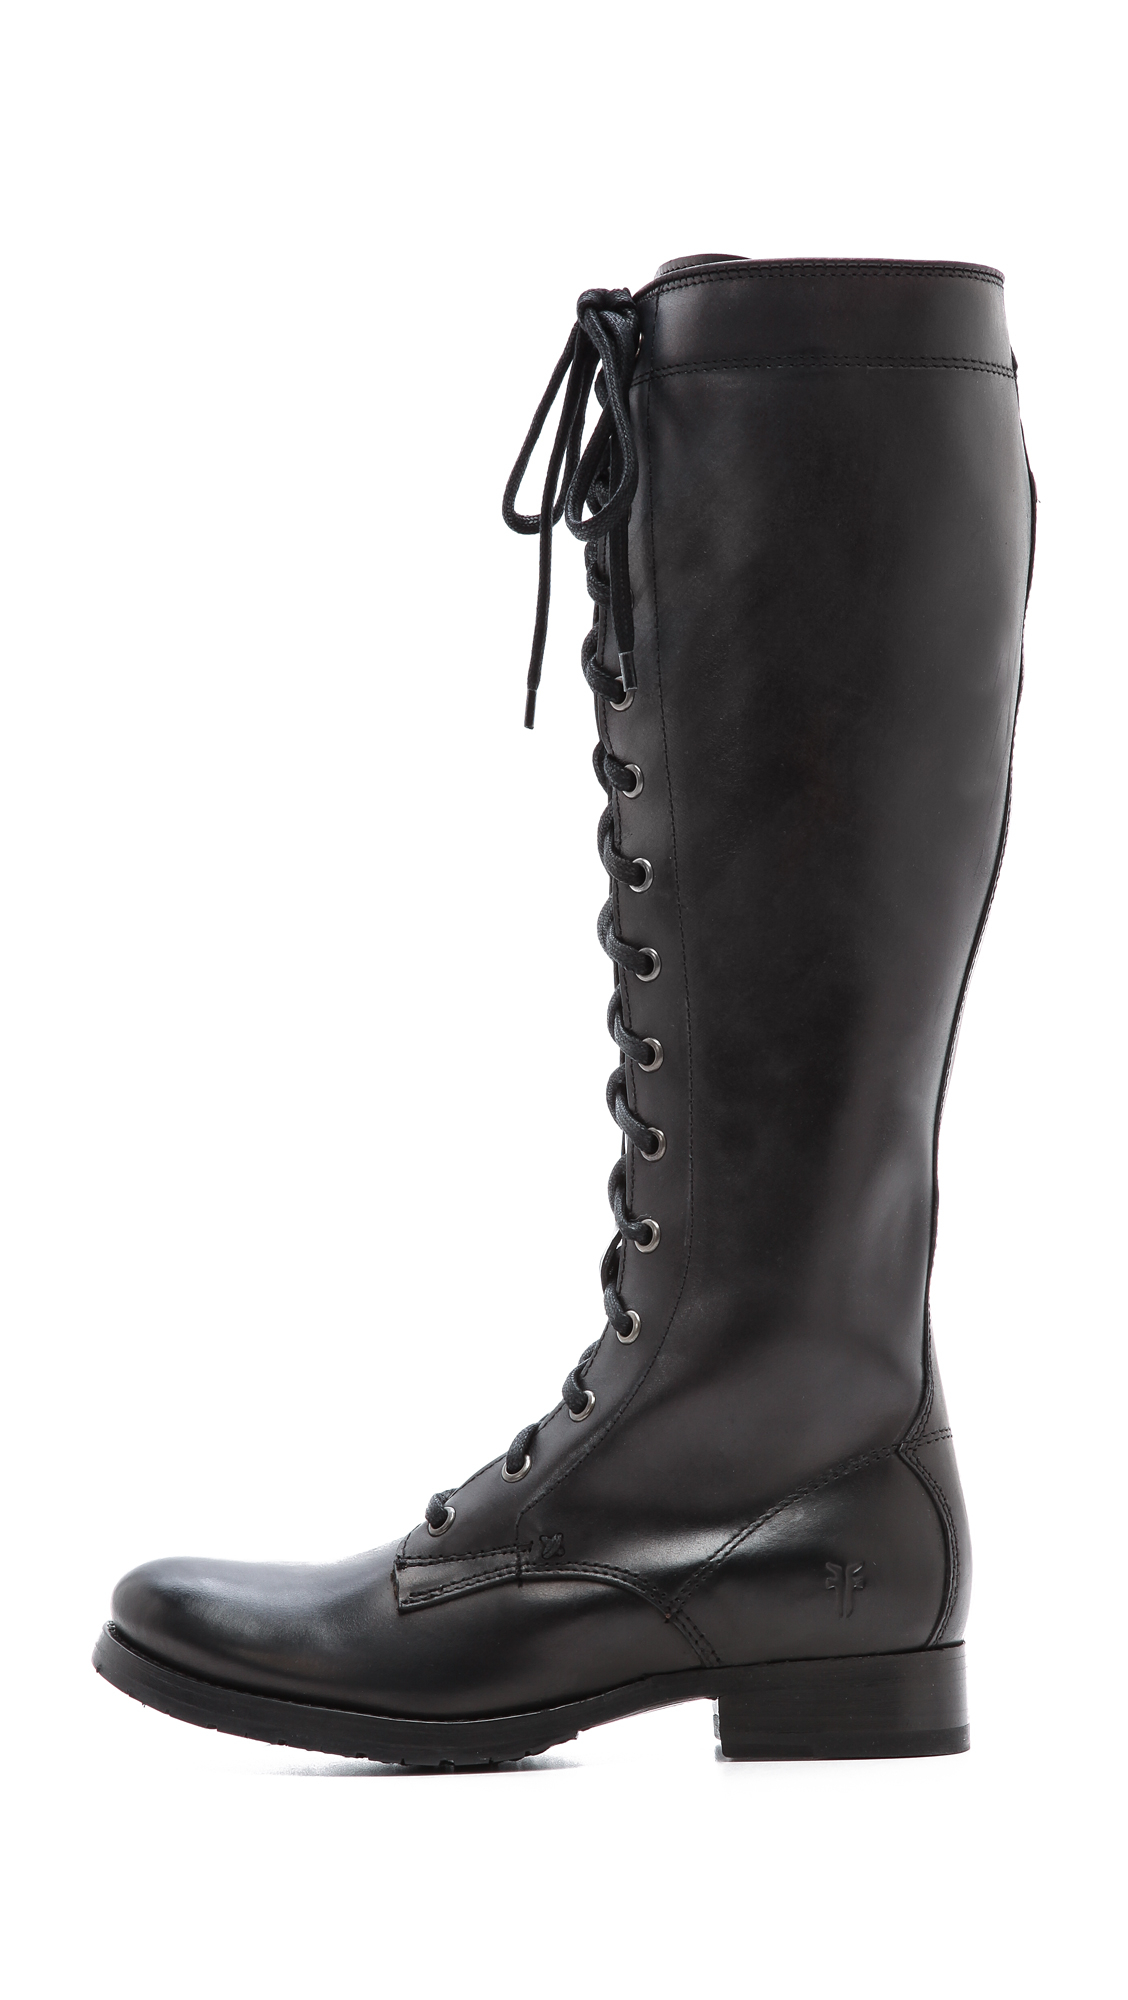 Frye Melissa Tall Lace Up Boots - Black in Black | Lyst